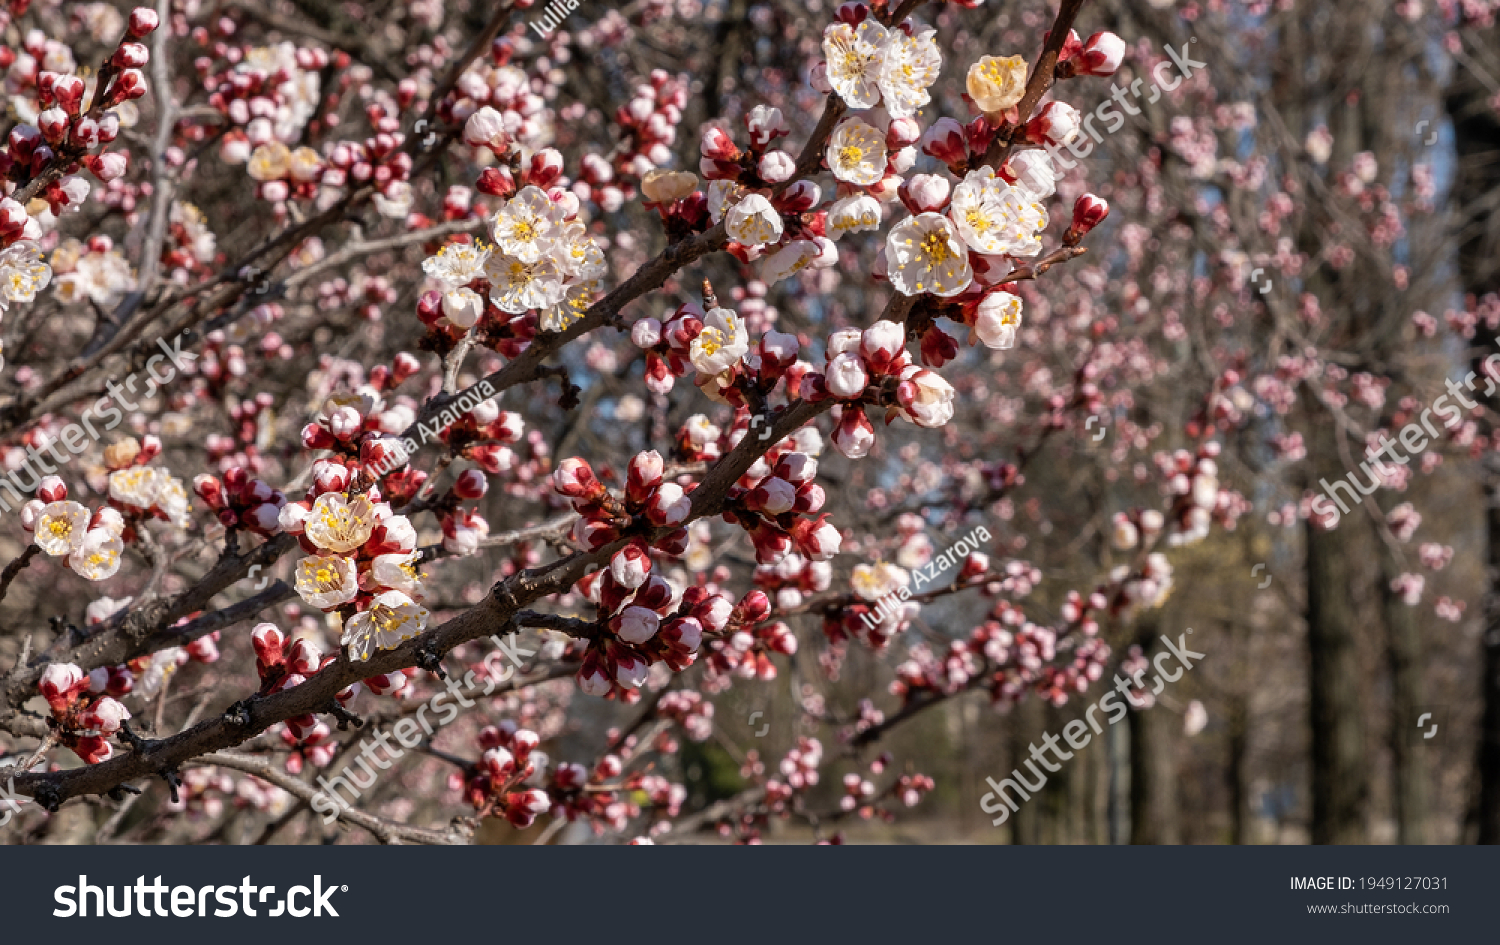 Nature in Springtime. Branch with beautiful white Spring Apricot Flowers on Tree. Nature scene with flowering apricot on blossom background. Botanical bloom concept. Blooming backdrop #1949127031